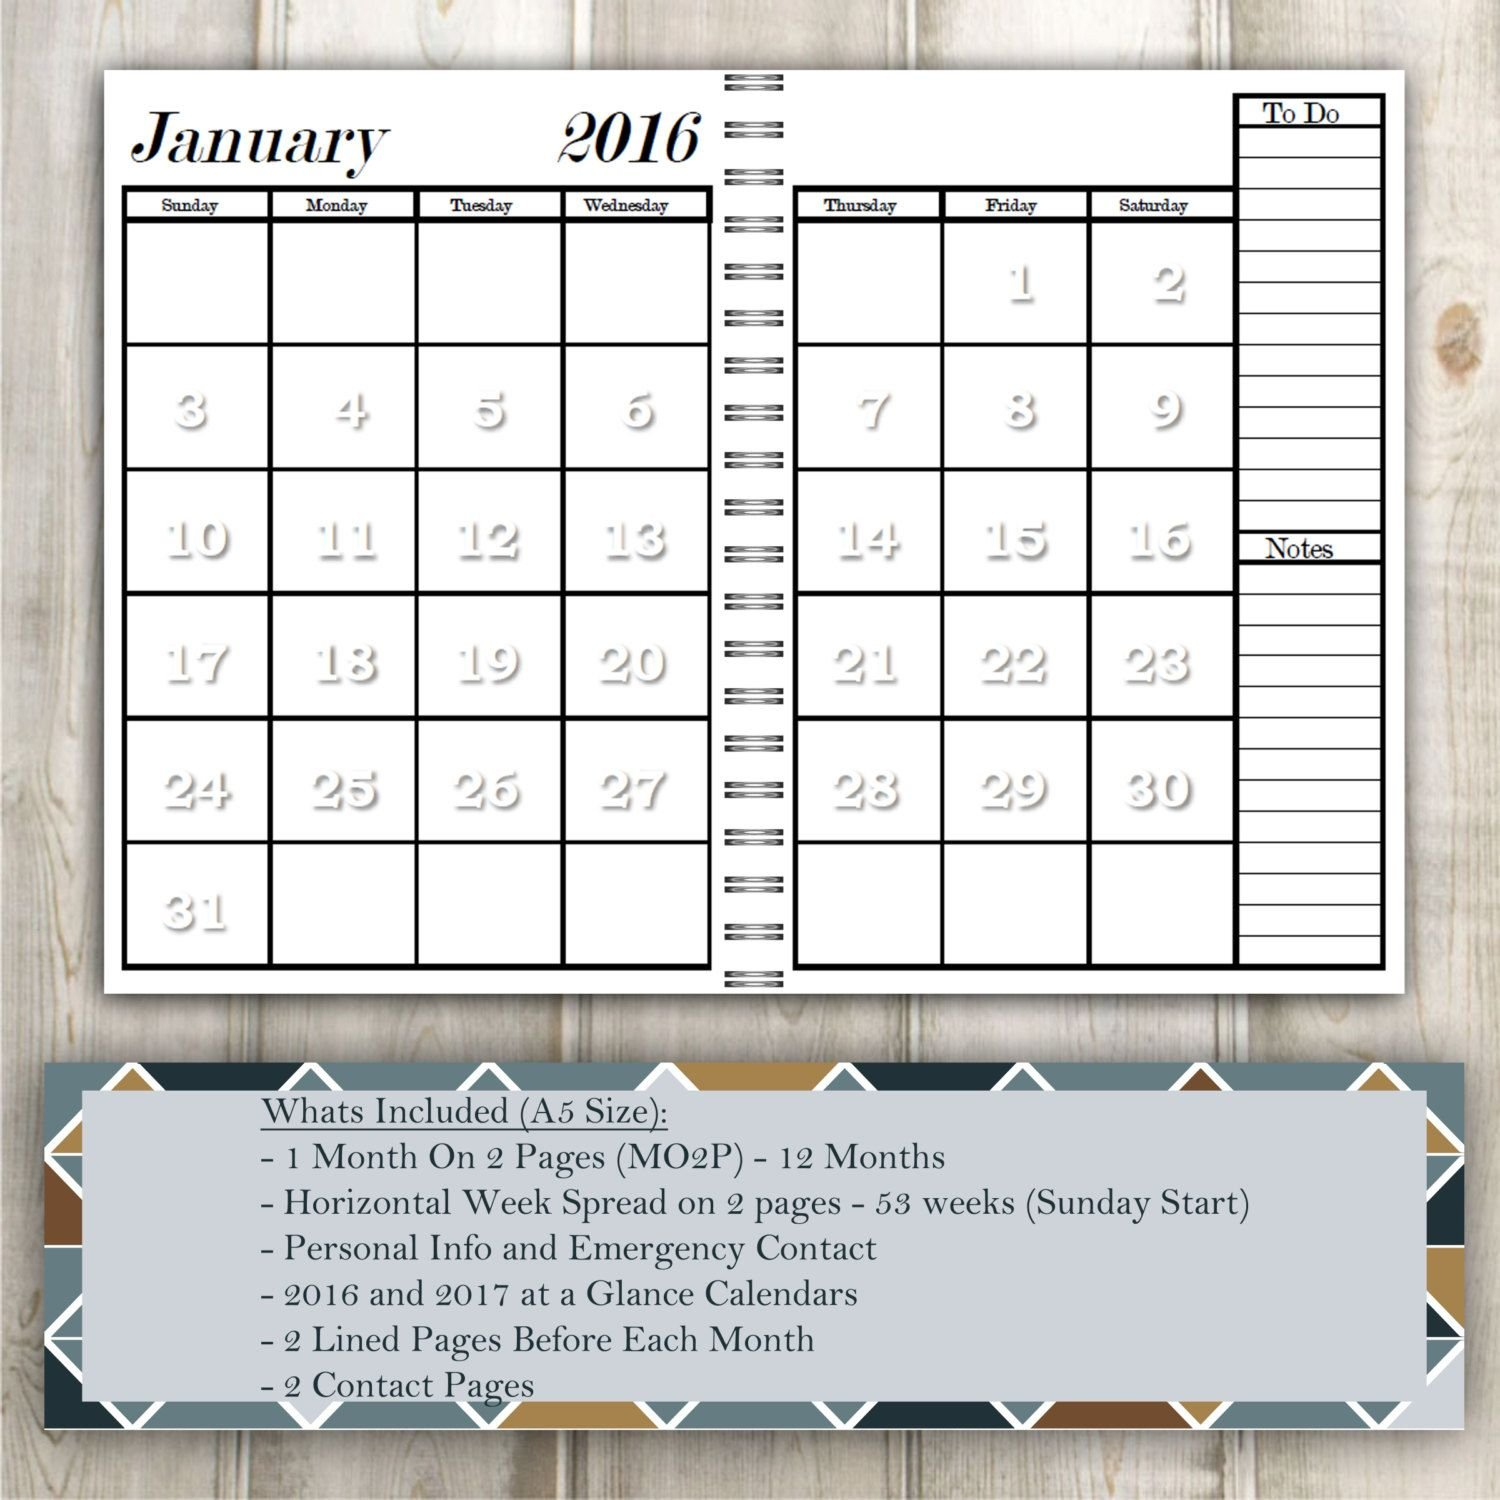 2016 Planner A5 Size - Month On 2 Pages (Mo2P) - Weekly intended for What Are The Measurements Of An A5 Planner